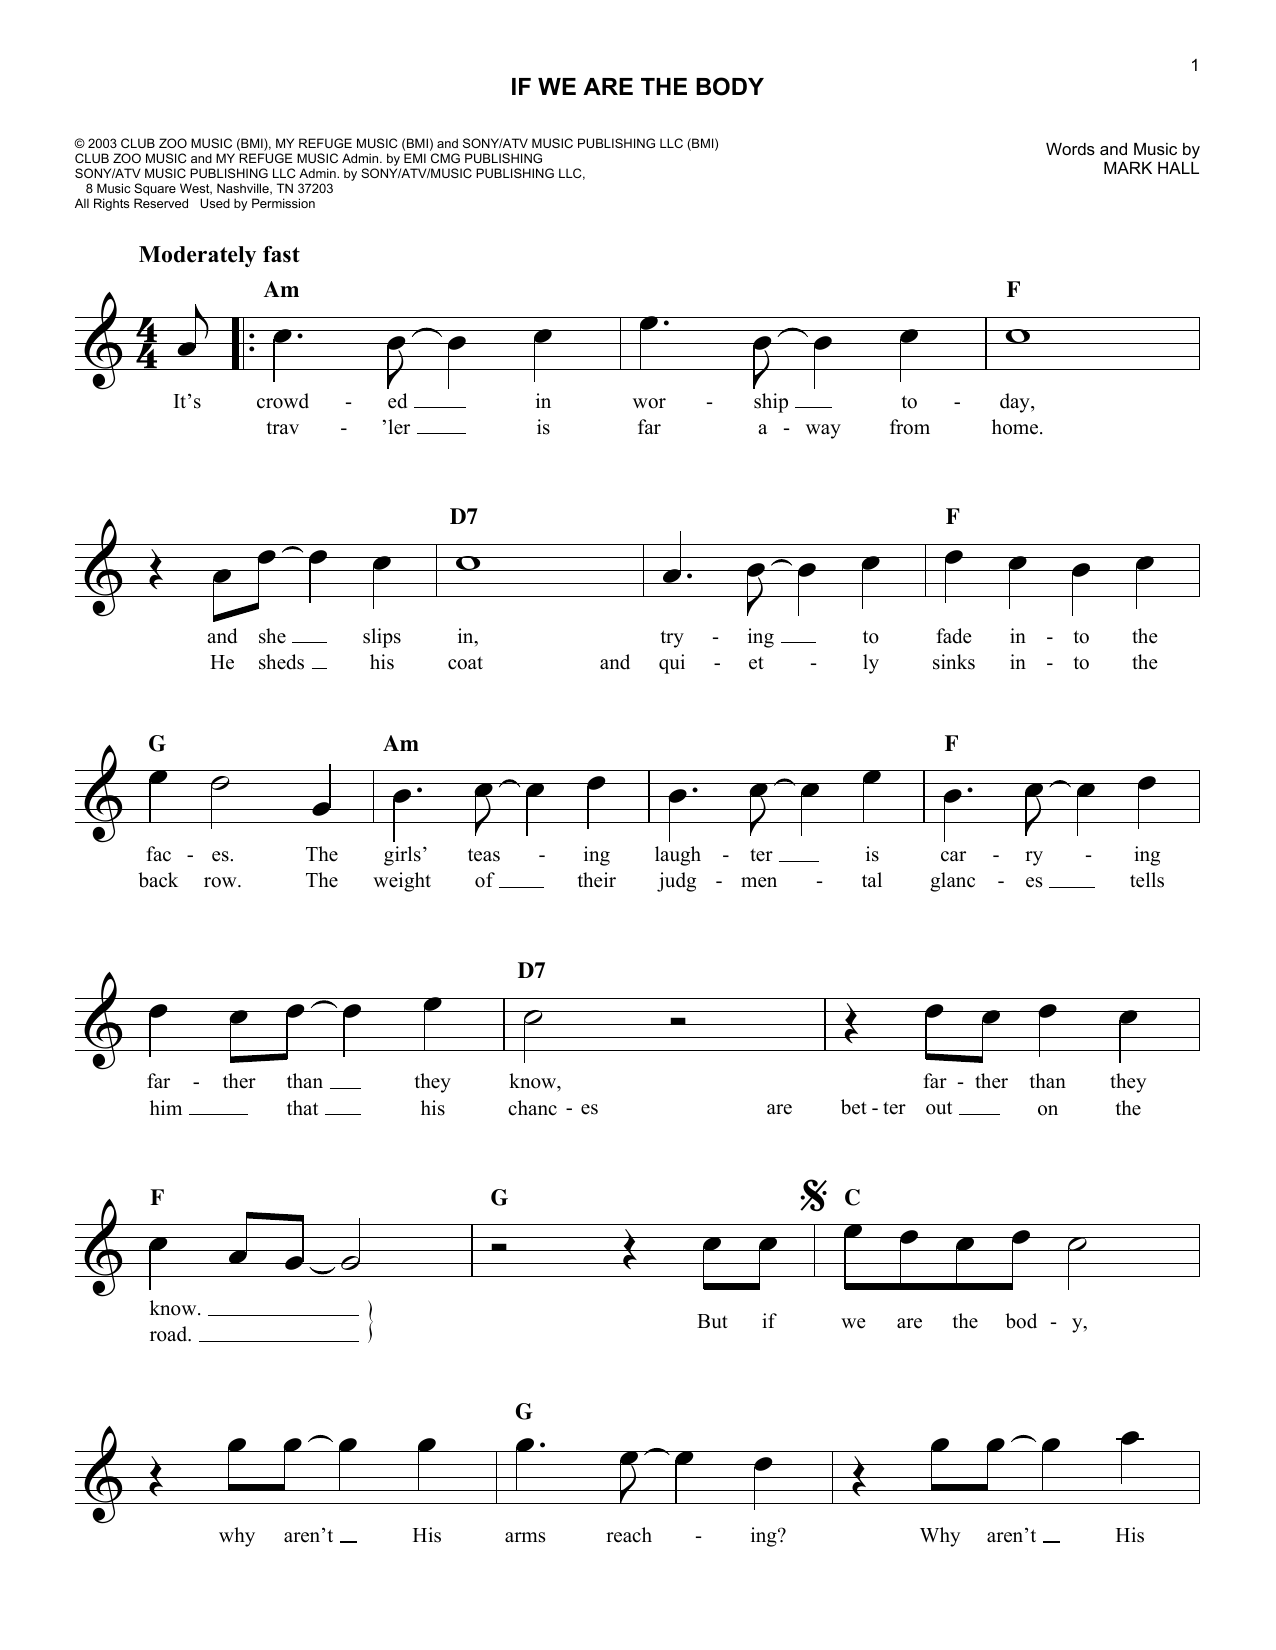 If We Are The Body Sheet Music